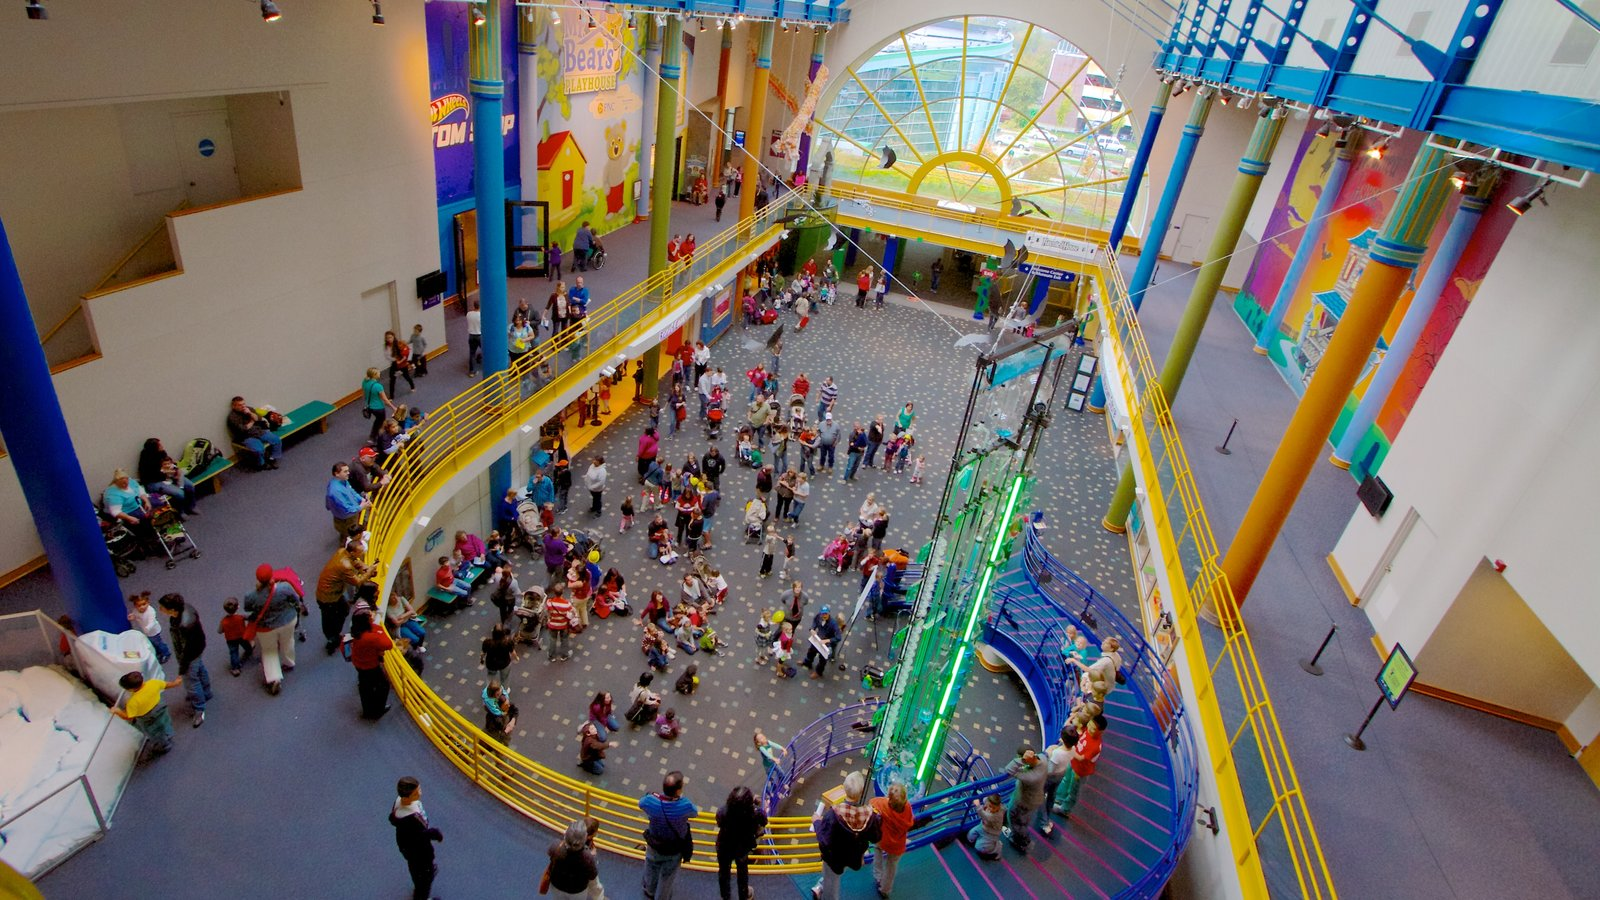 Children's Museum of Indianapolis Pictures: View Photos ... - photo#46